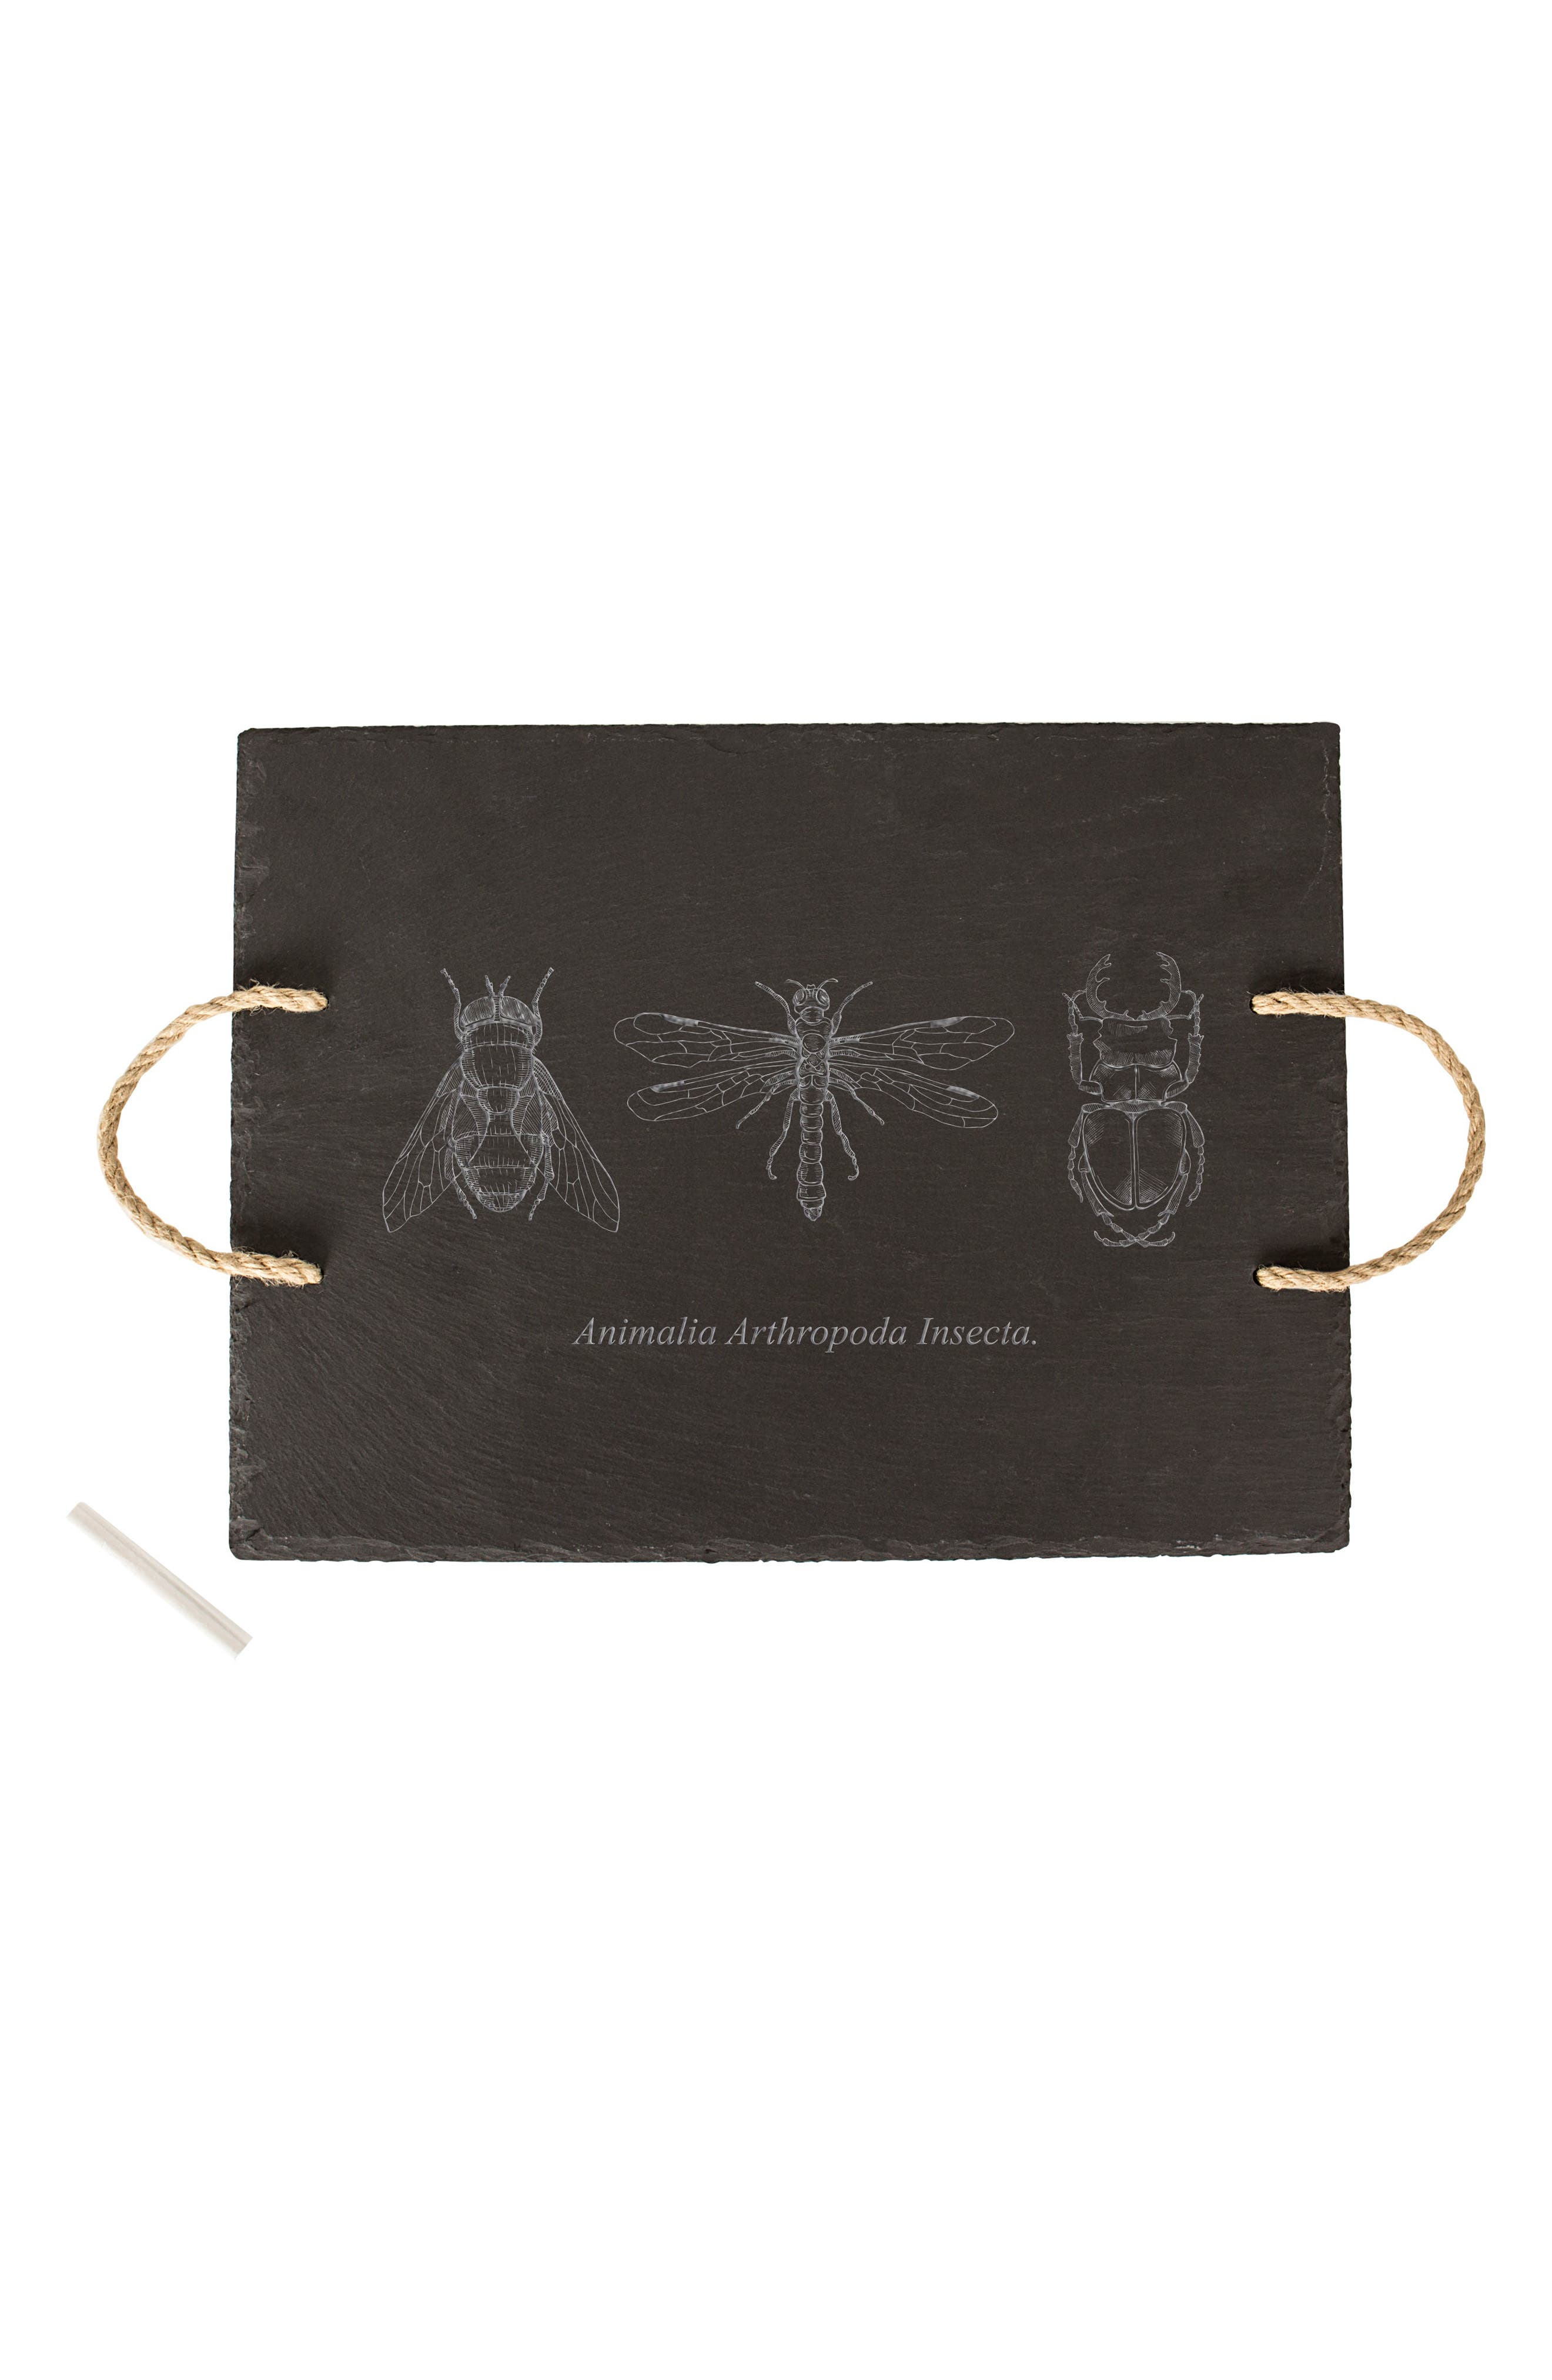 Insect Slate Tray,                         Main,                         color, Black